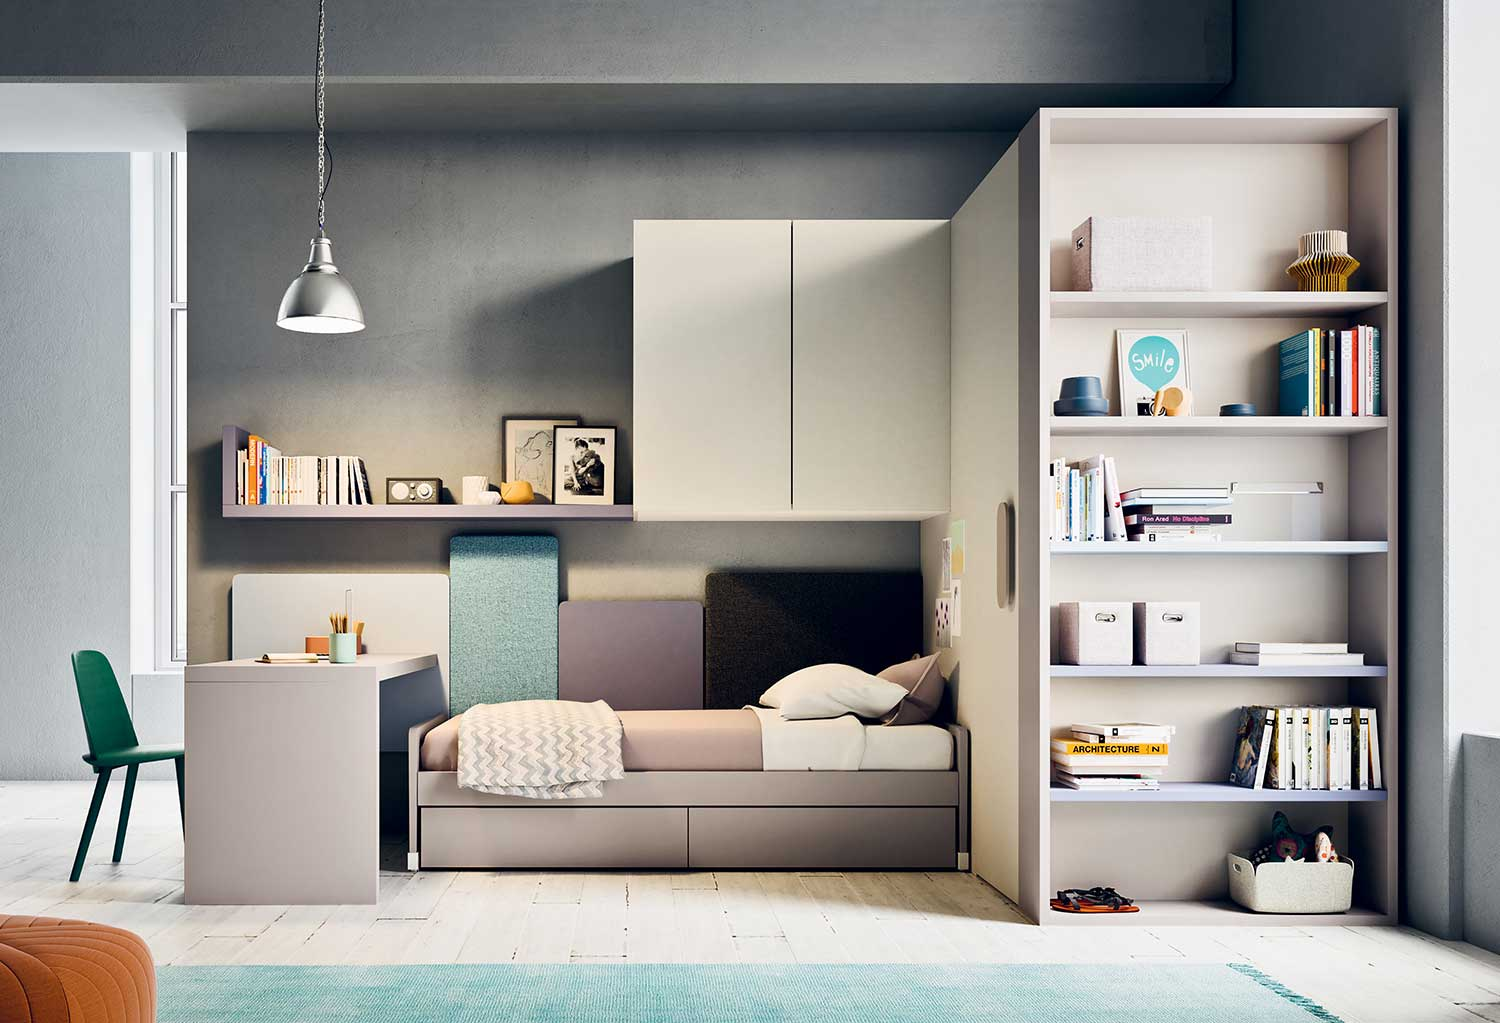 Bedroom set for girls or boys, complete with desk, bed, storage furniture and freestanding walk-in wardrobe